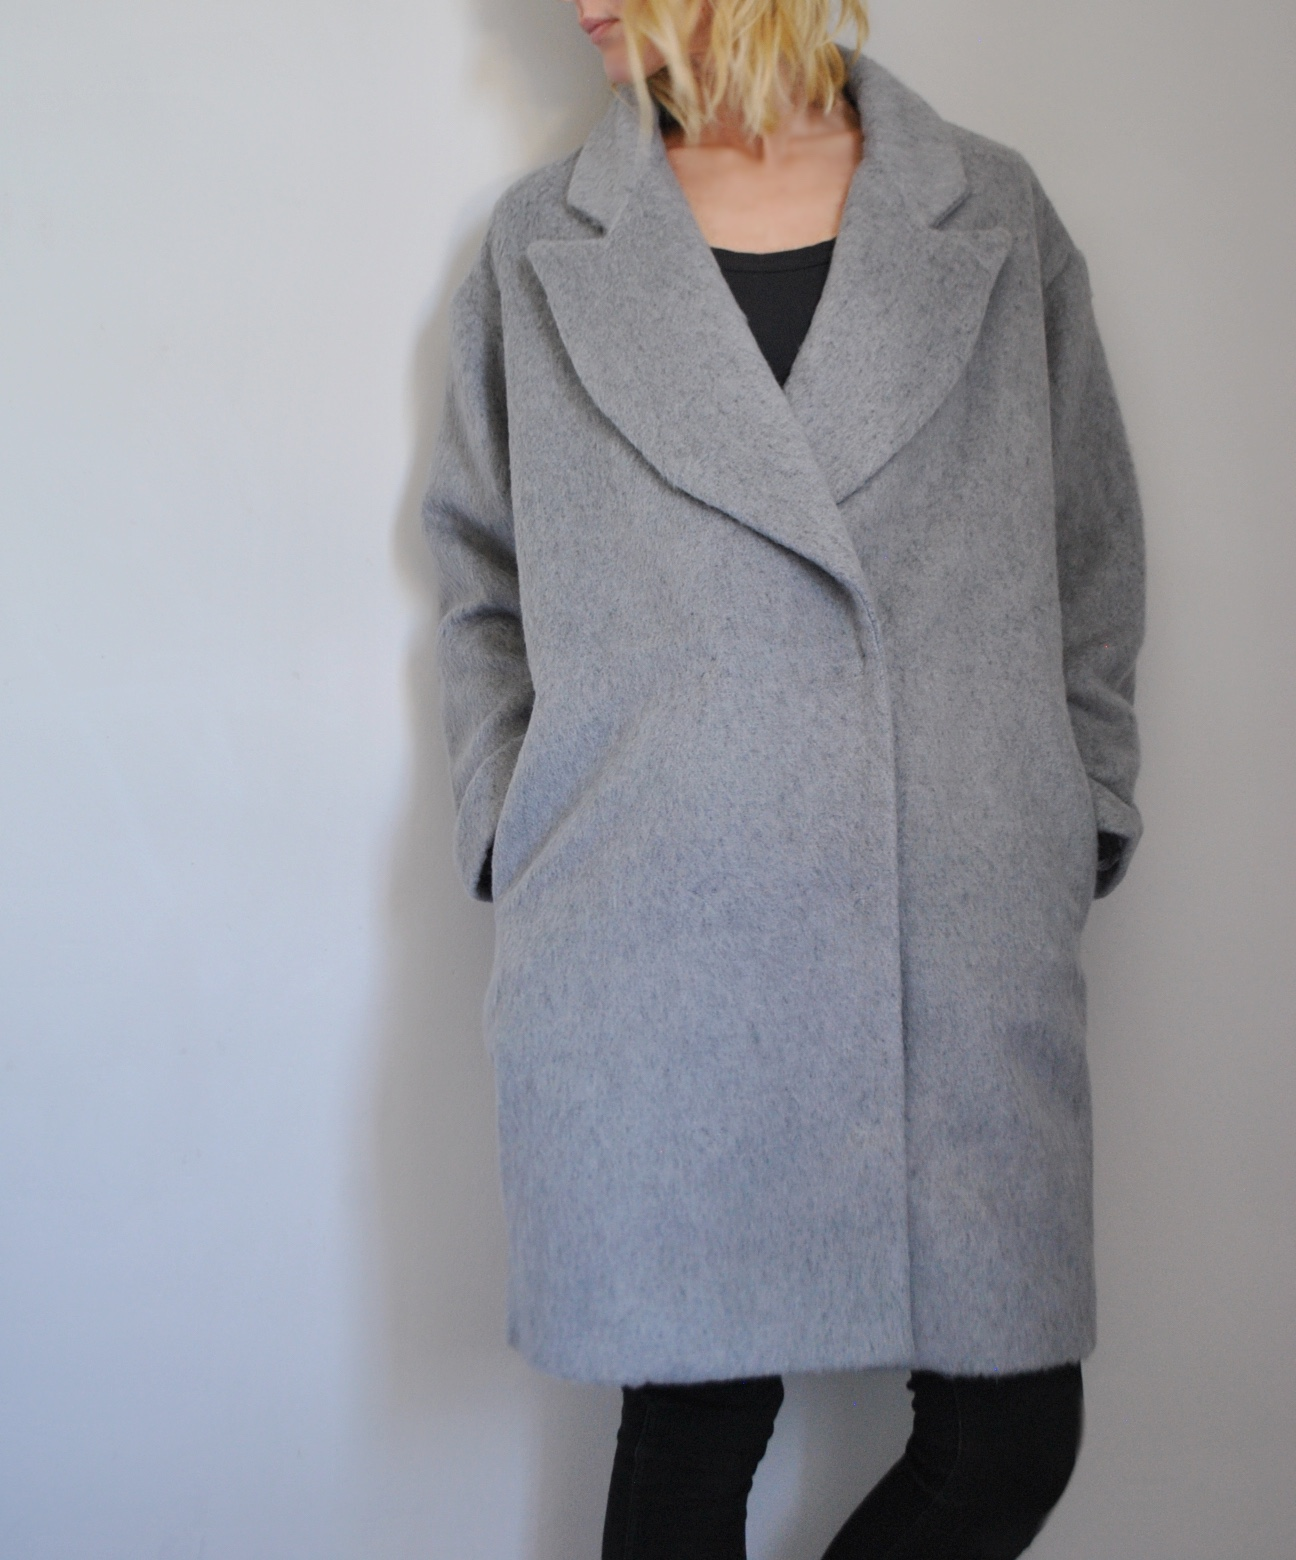 grey wool cocoon coat